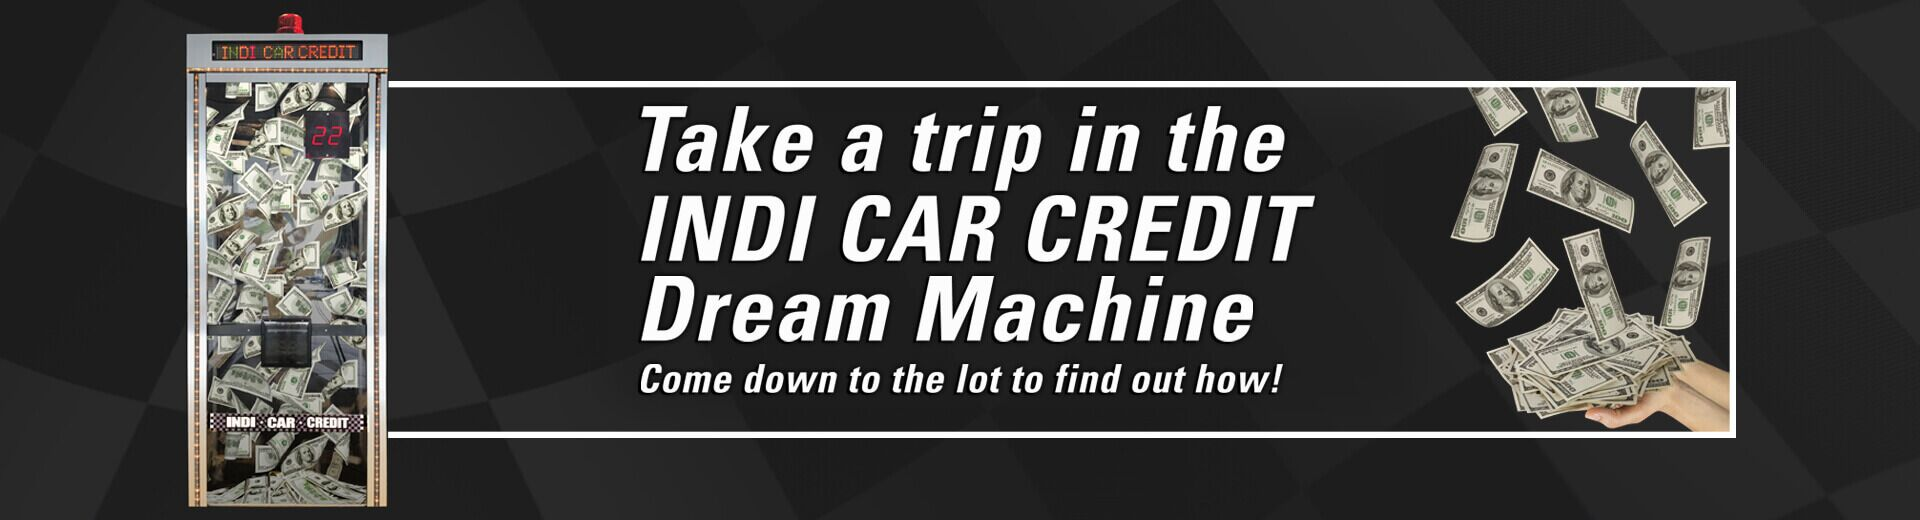 Dream Machine at Indi Car Credit